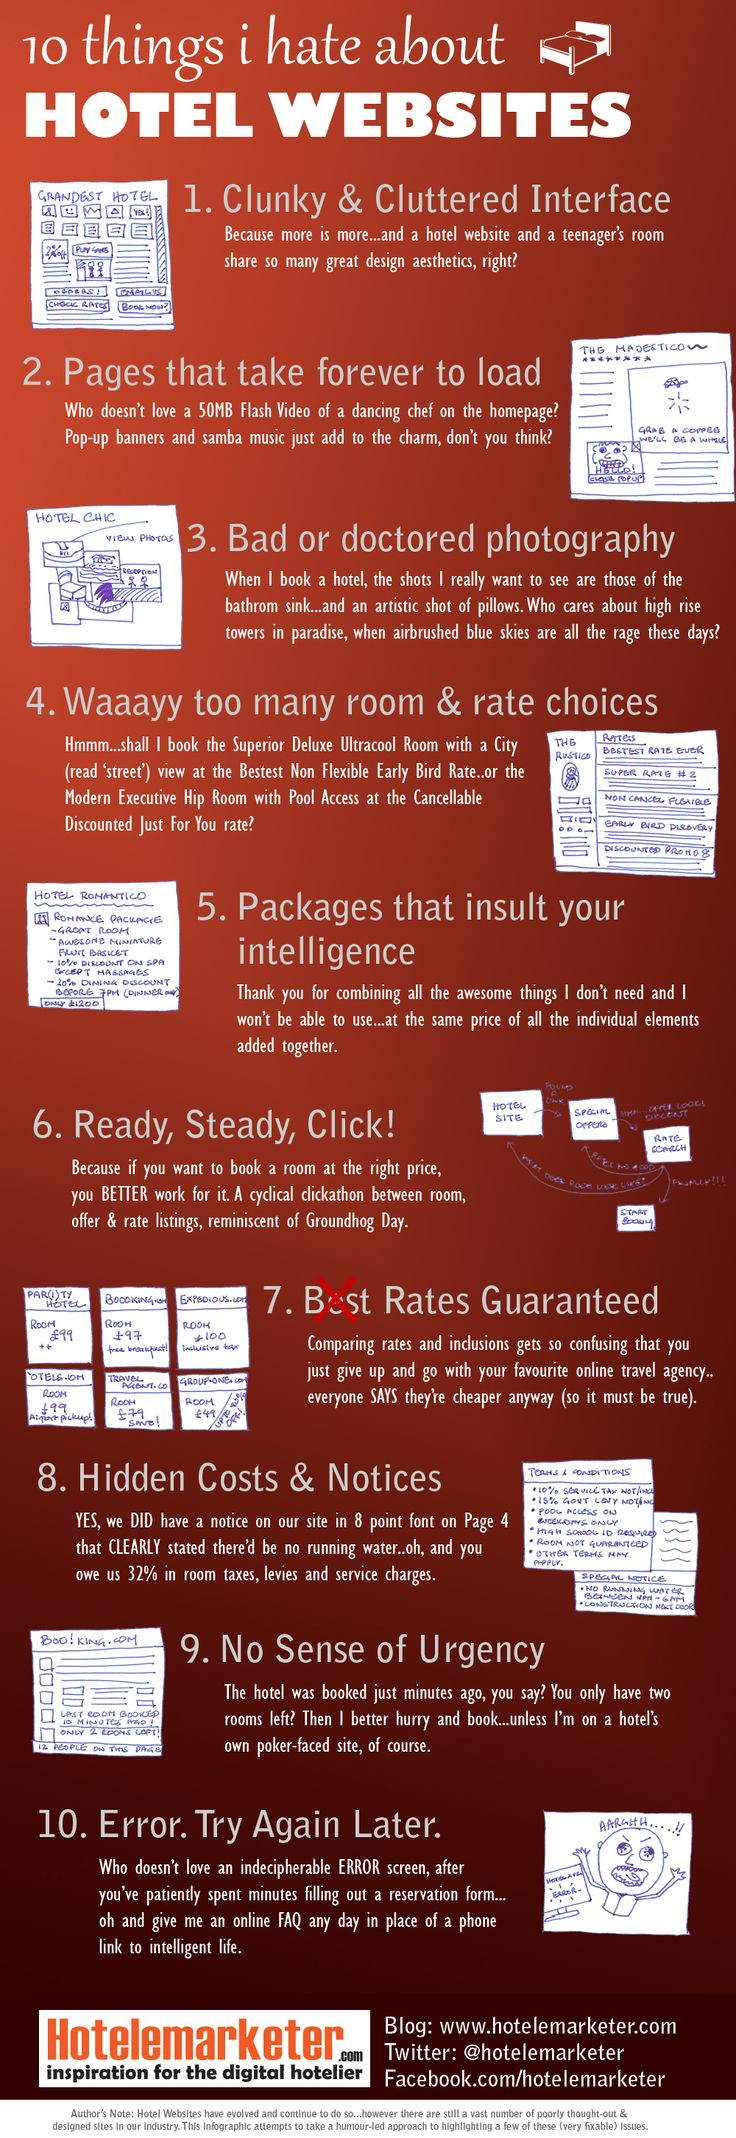 [INFOGRAPHIC] 10 Things I Hate About Hotel Websites